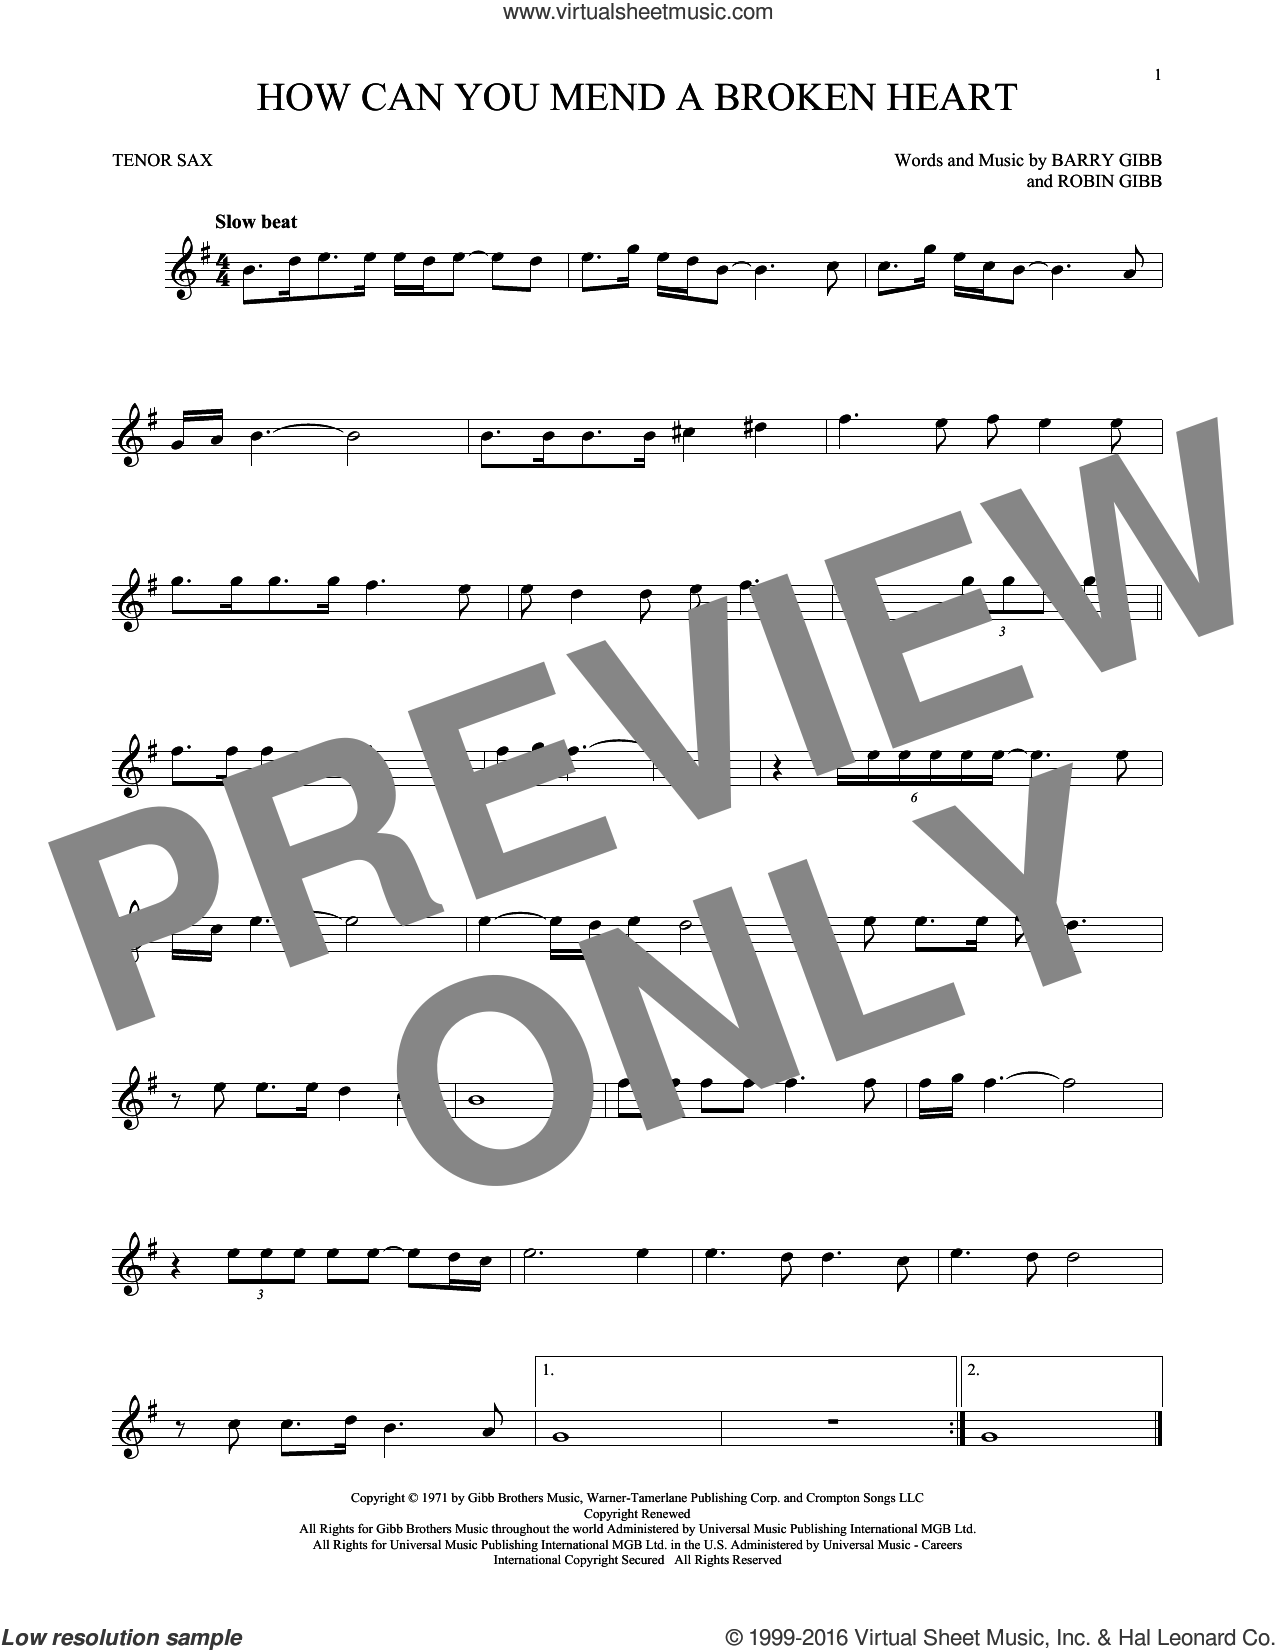 How Can You Mend A Broken Heart sheet music for tenor saxophone solo by Robin Gibb, Bee Gees and Barry Gibb. Score Image Preview.